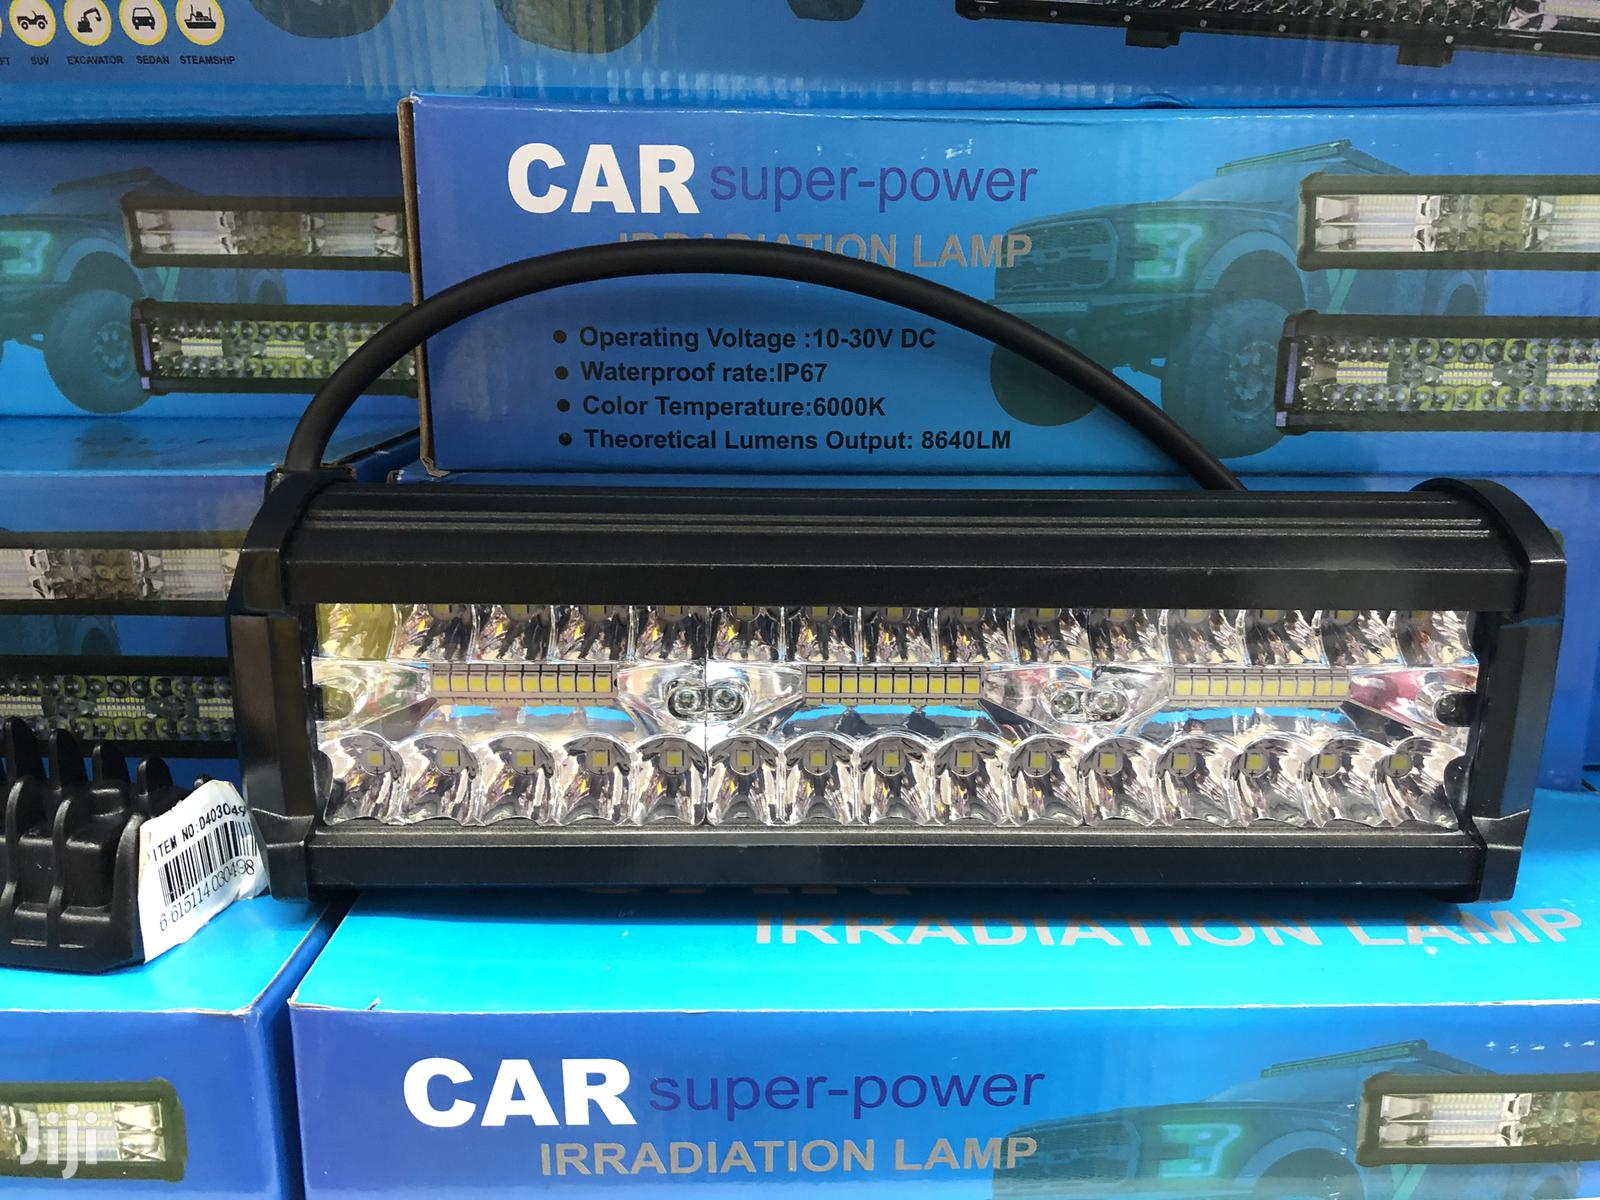 Irradiation Lamp - Cars And Buses